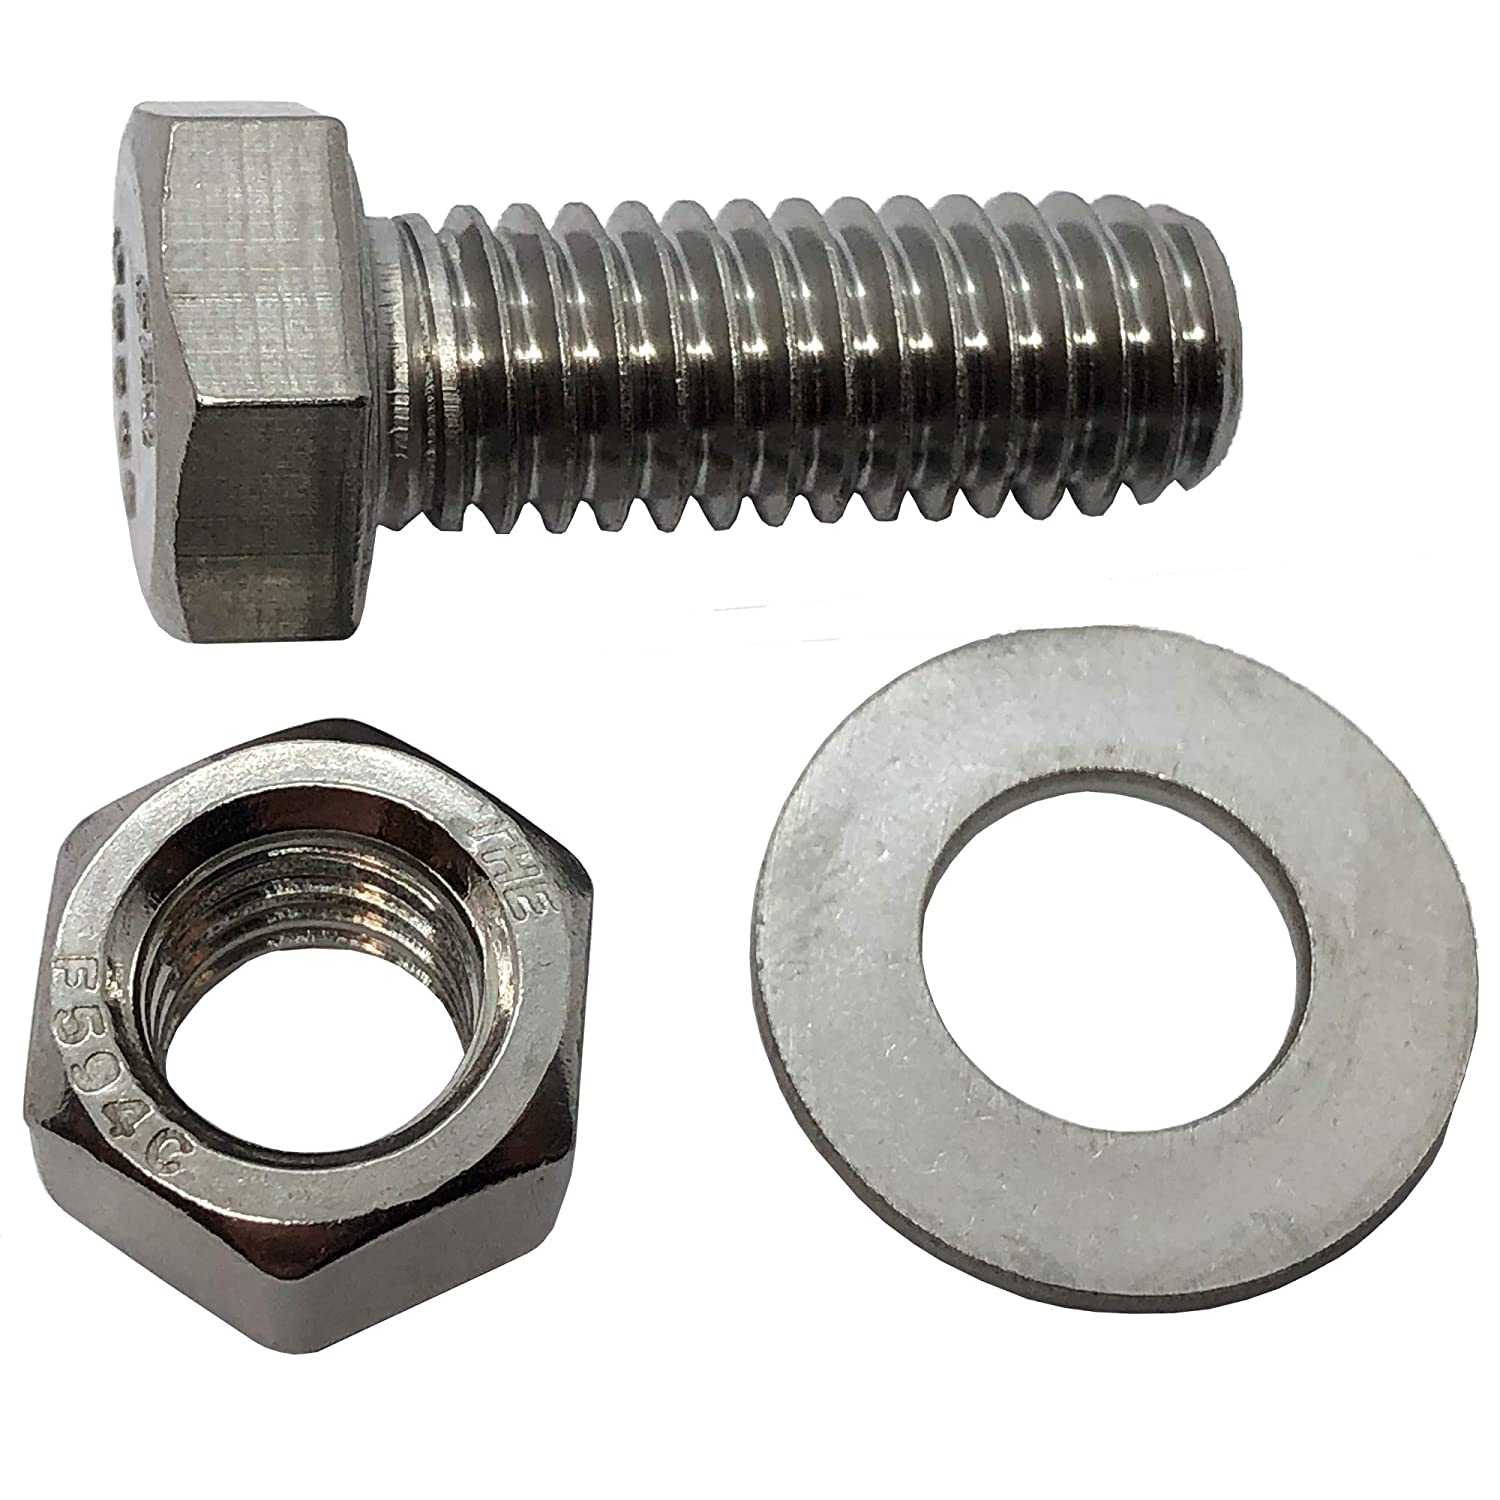 10 3//8-16 x 2 General Purpose Bolts + 18-8 HEX HEAD Bolt 10 304-STAINLESS STEEL BOLTS 304 Grade Washers Nuts + NUTS /& WASHERS 10